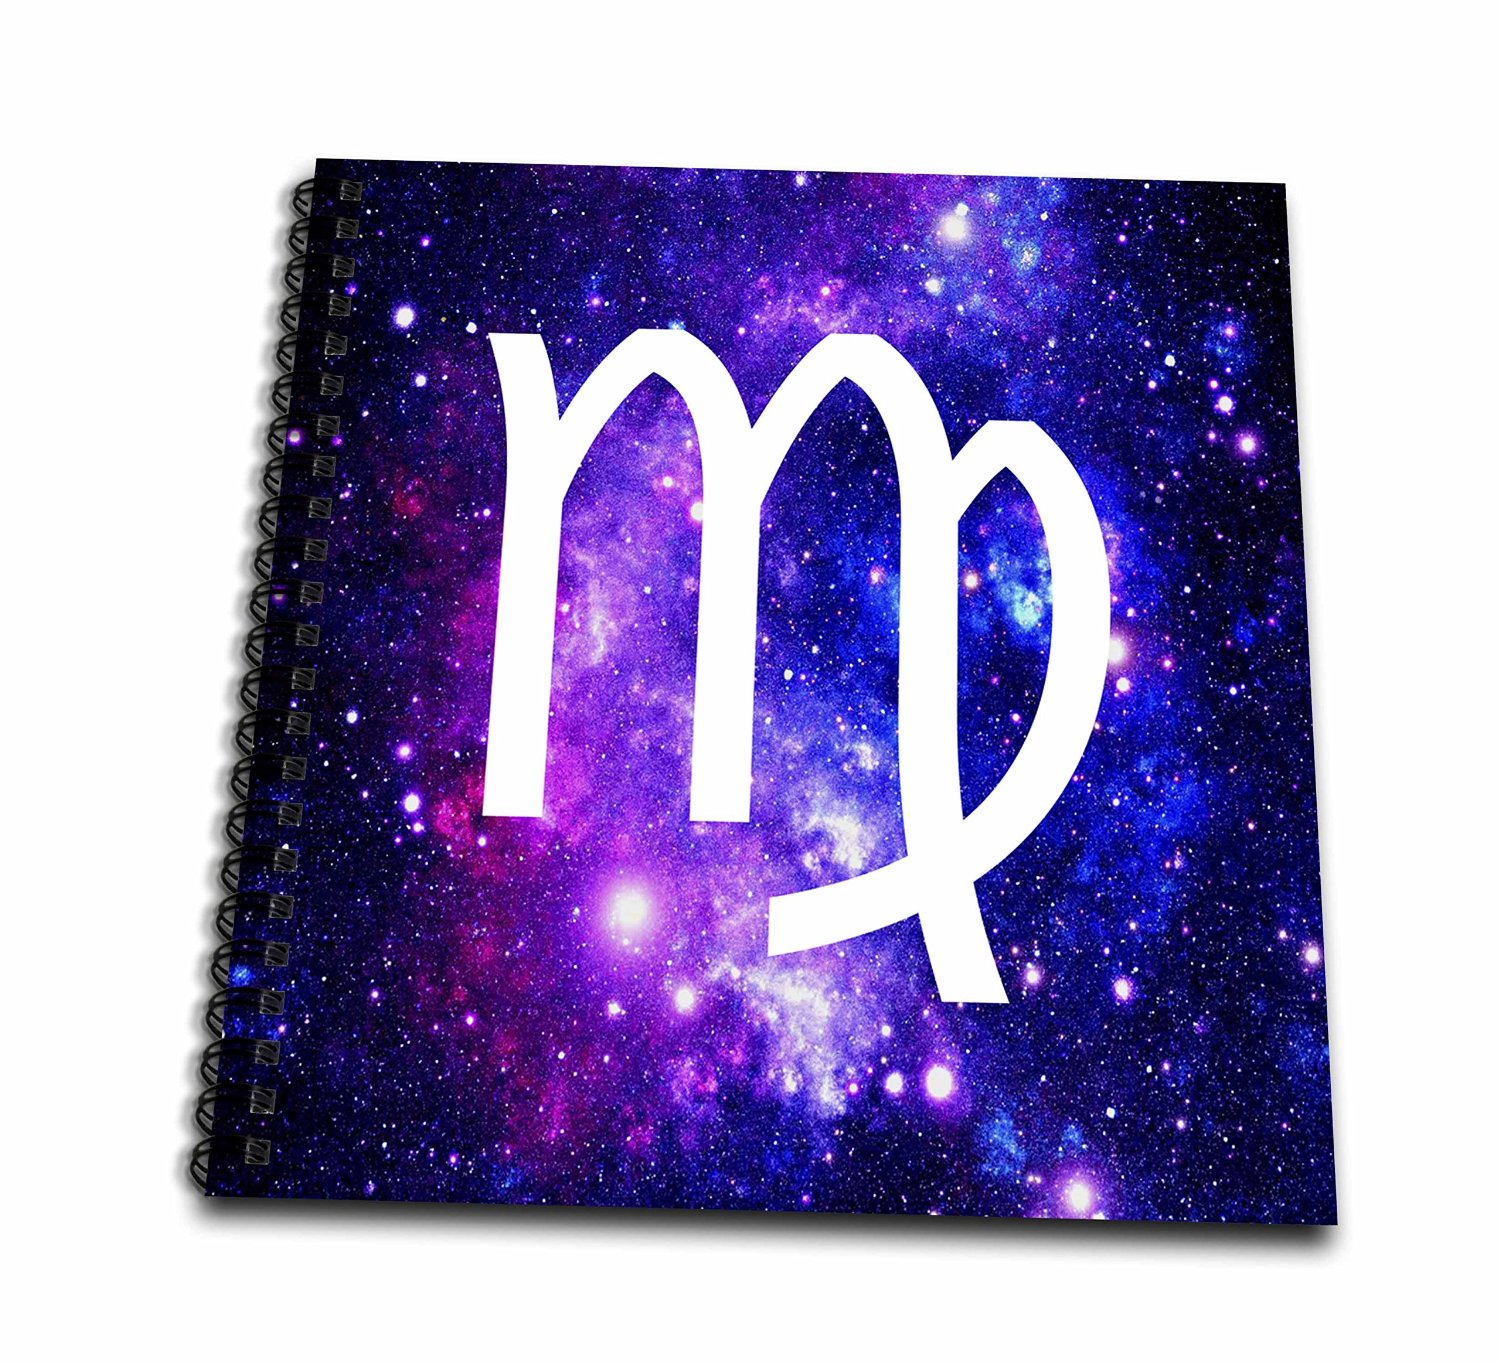 Useful 3drose Virgo Star Sign On Purple Space Background Zodiac Horoscope Symbol Two A Great Variety Of Goods Dinnerware & Serving Dishes Home & Garden